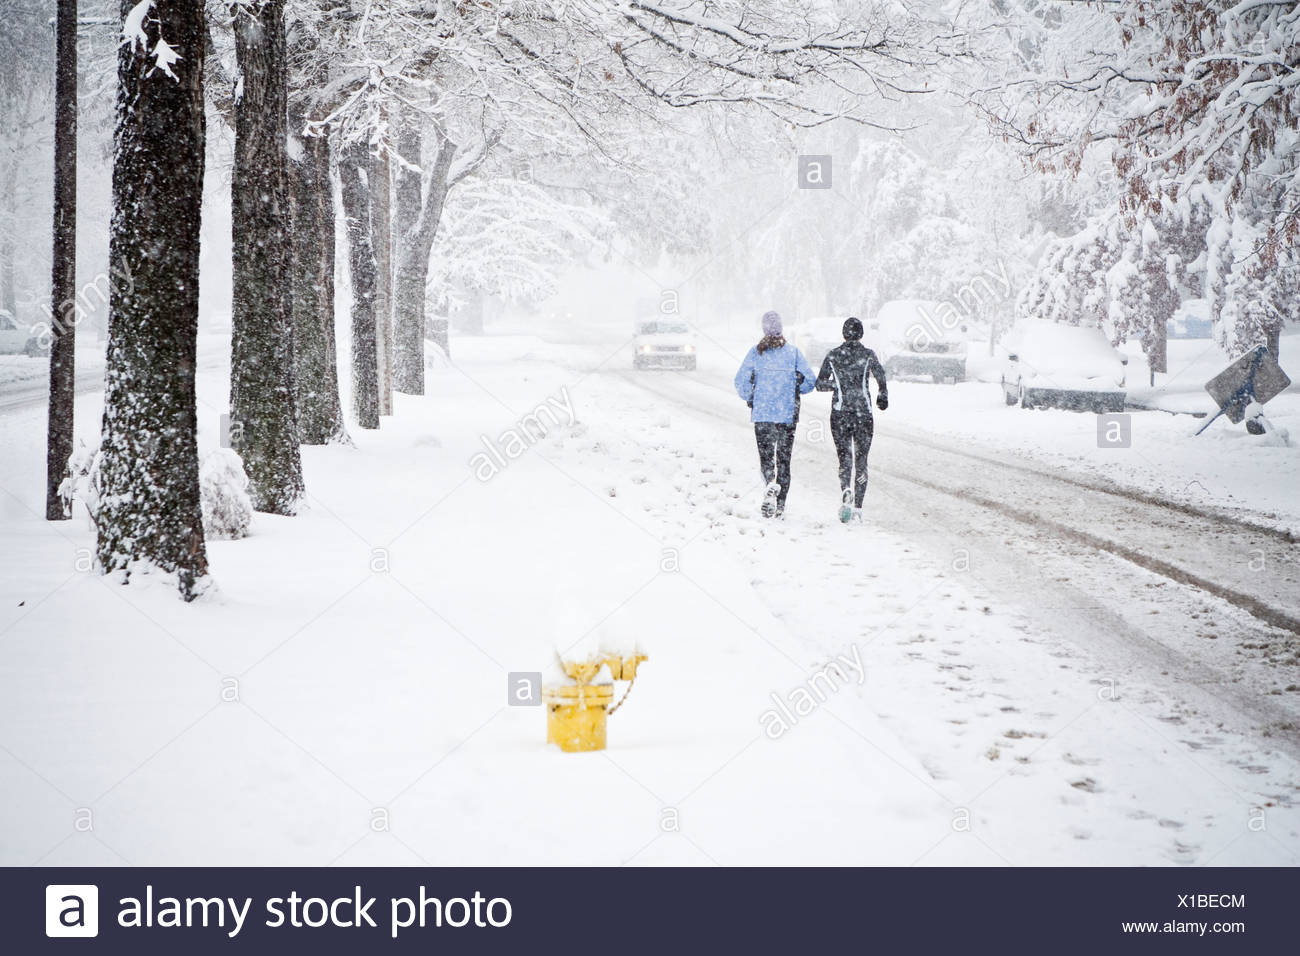 Two women run down Mountain Avenue in a snowstorm. - Stock Image